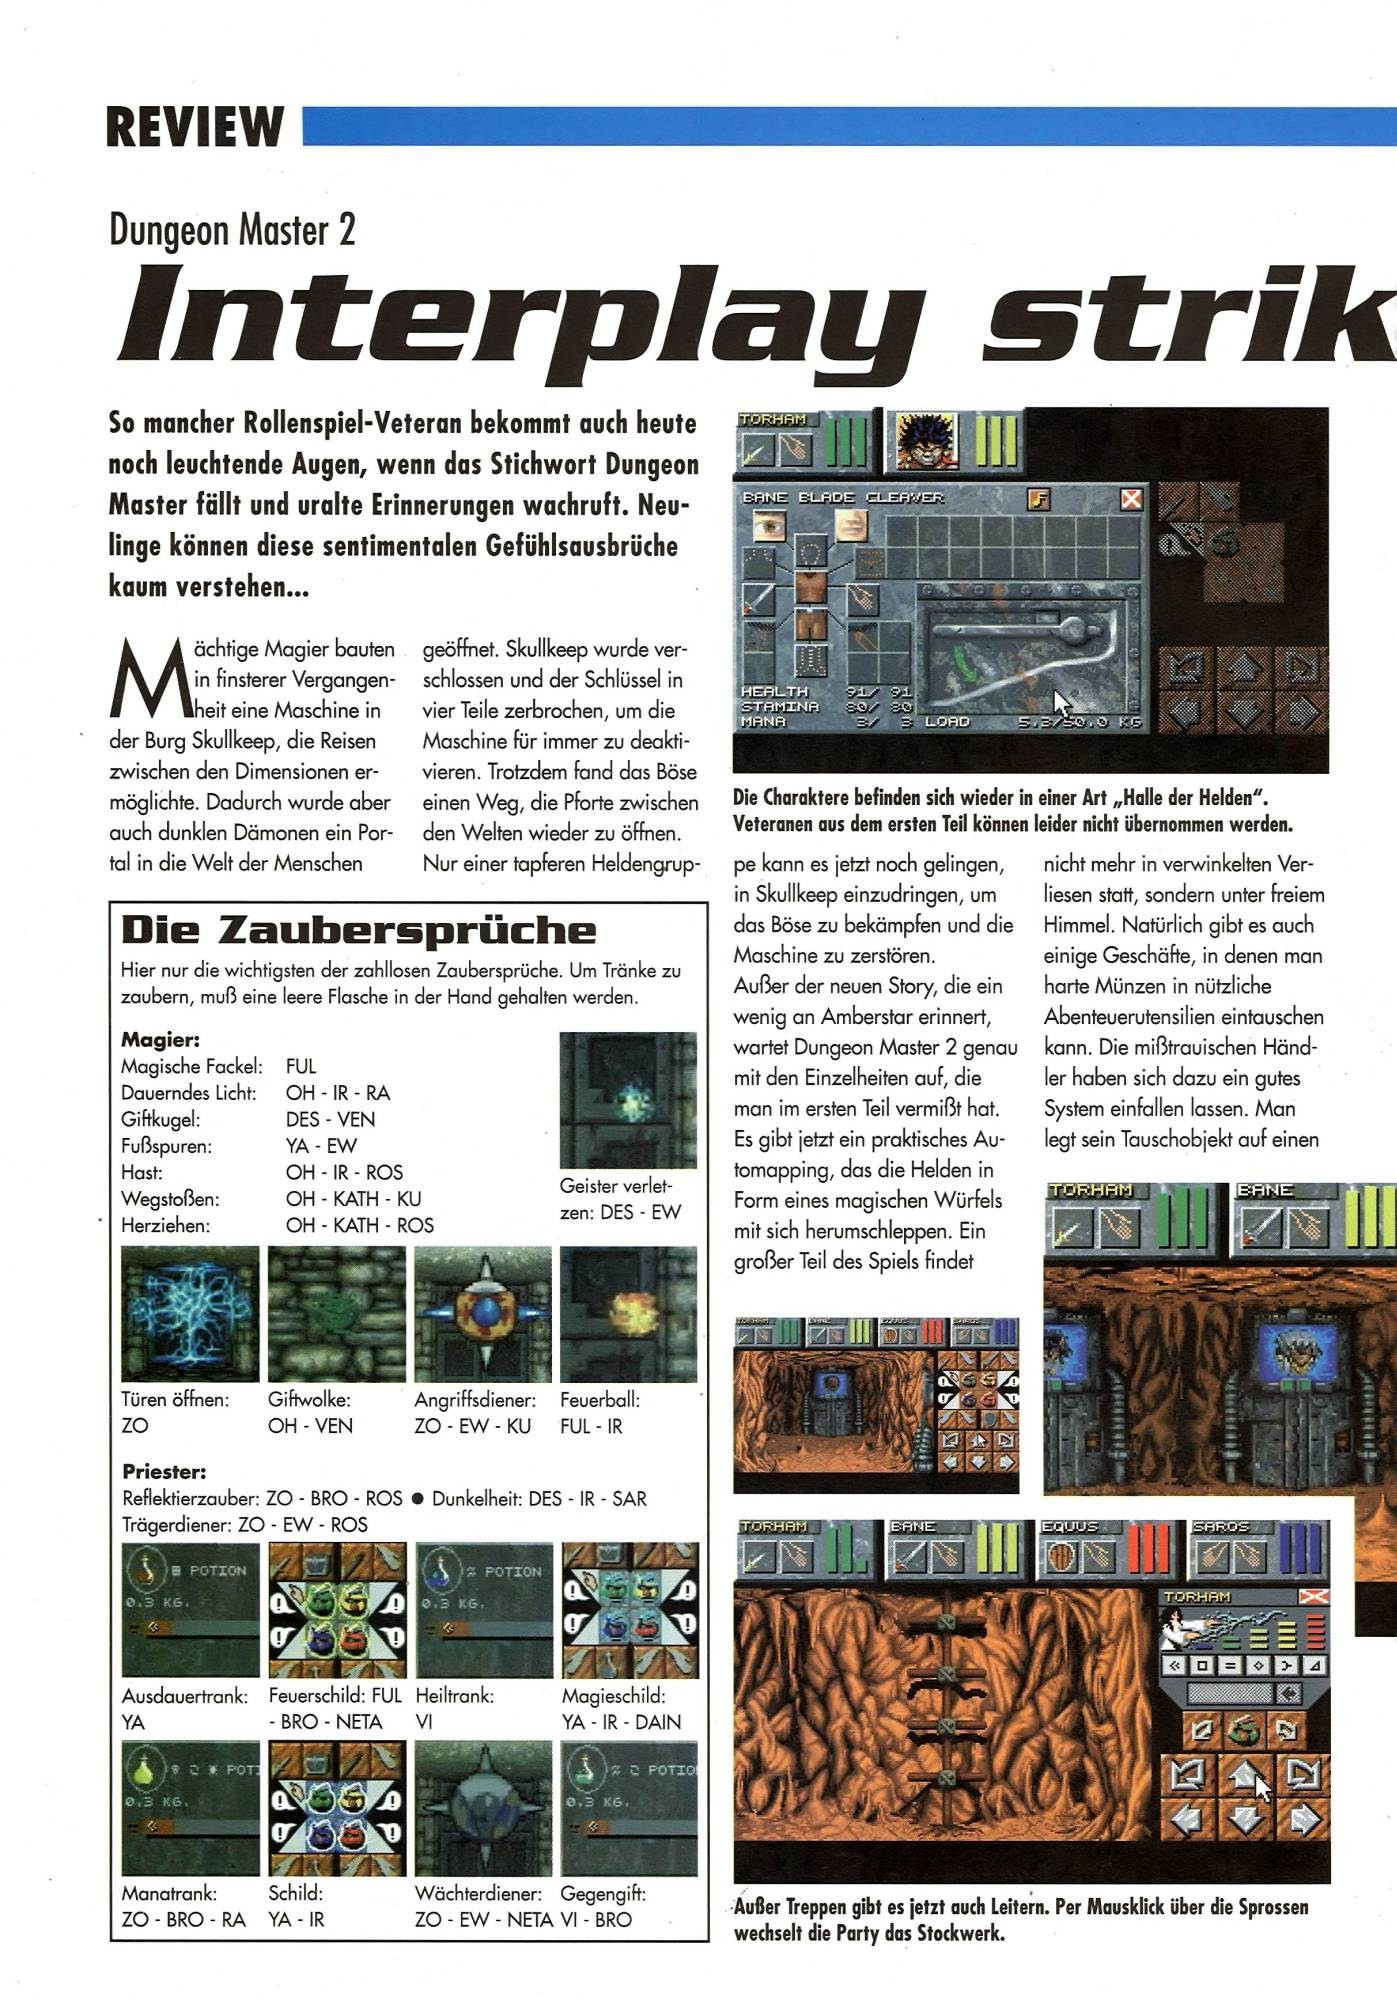 Dungeon Master II for PC Review published in German magazine 'PC Games', September 1995, Page 108